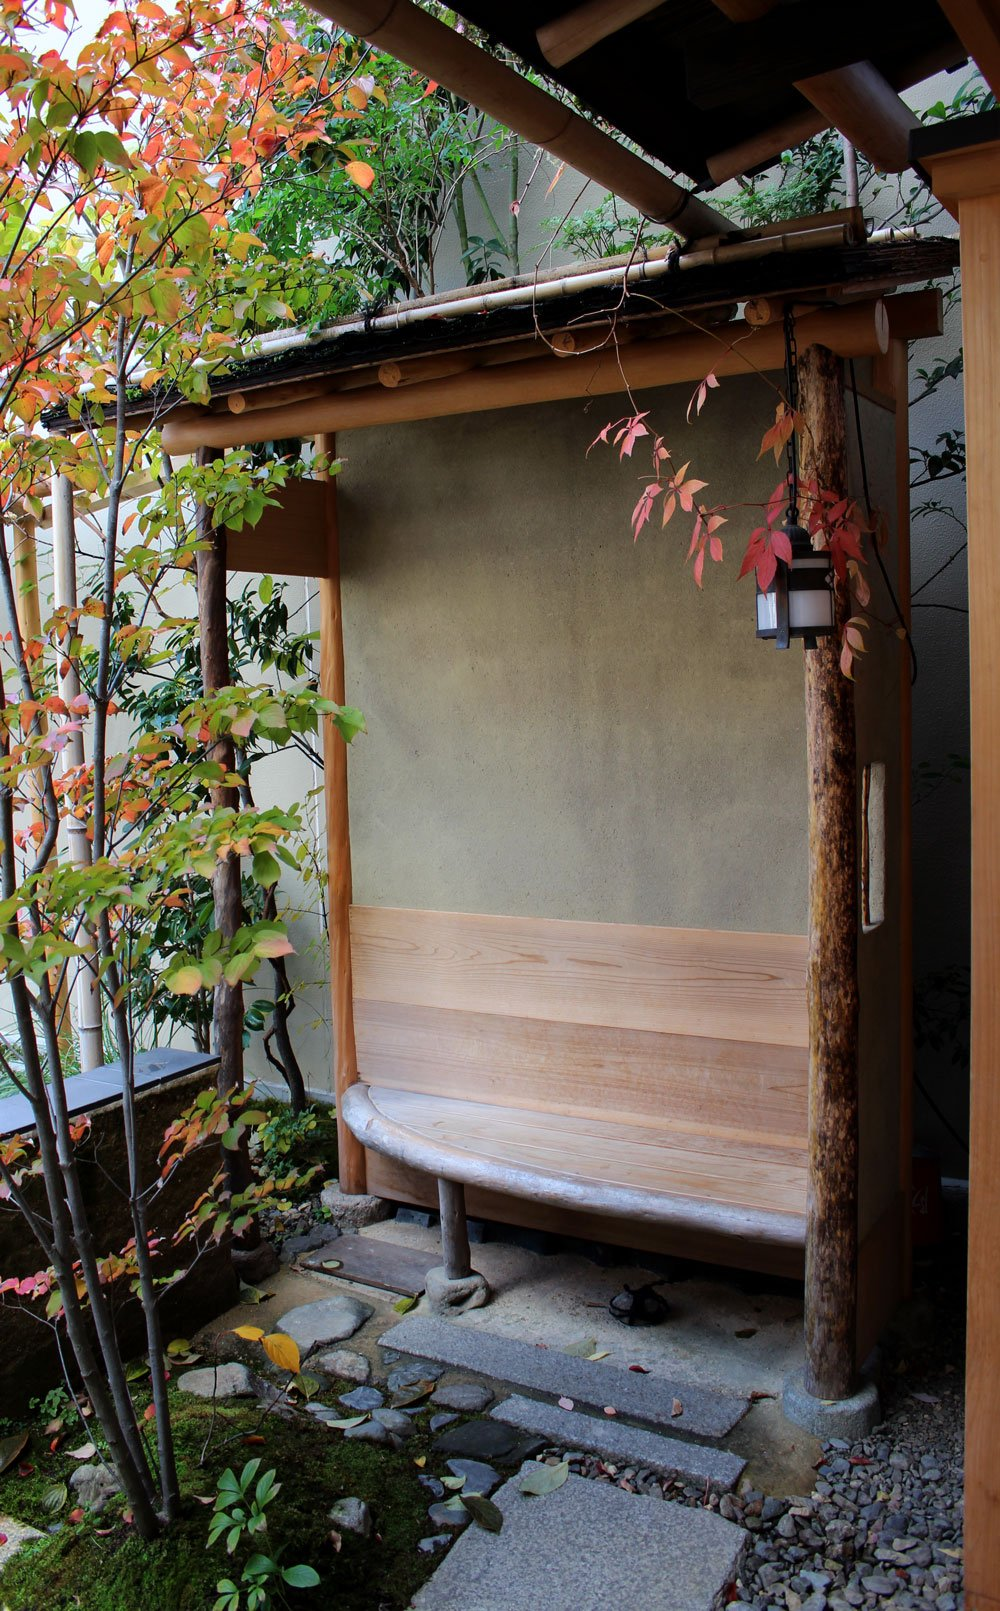 A nook for sipping coffee at Kyoto's Blue Bottle outpost.